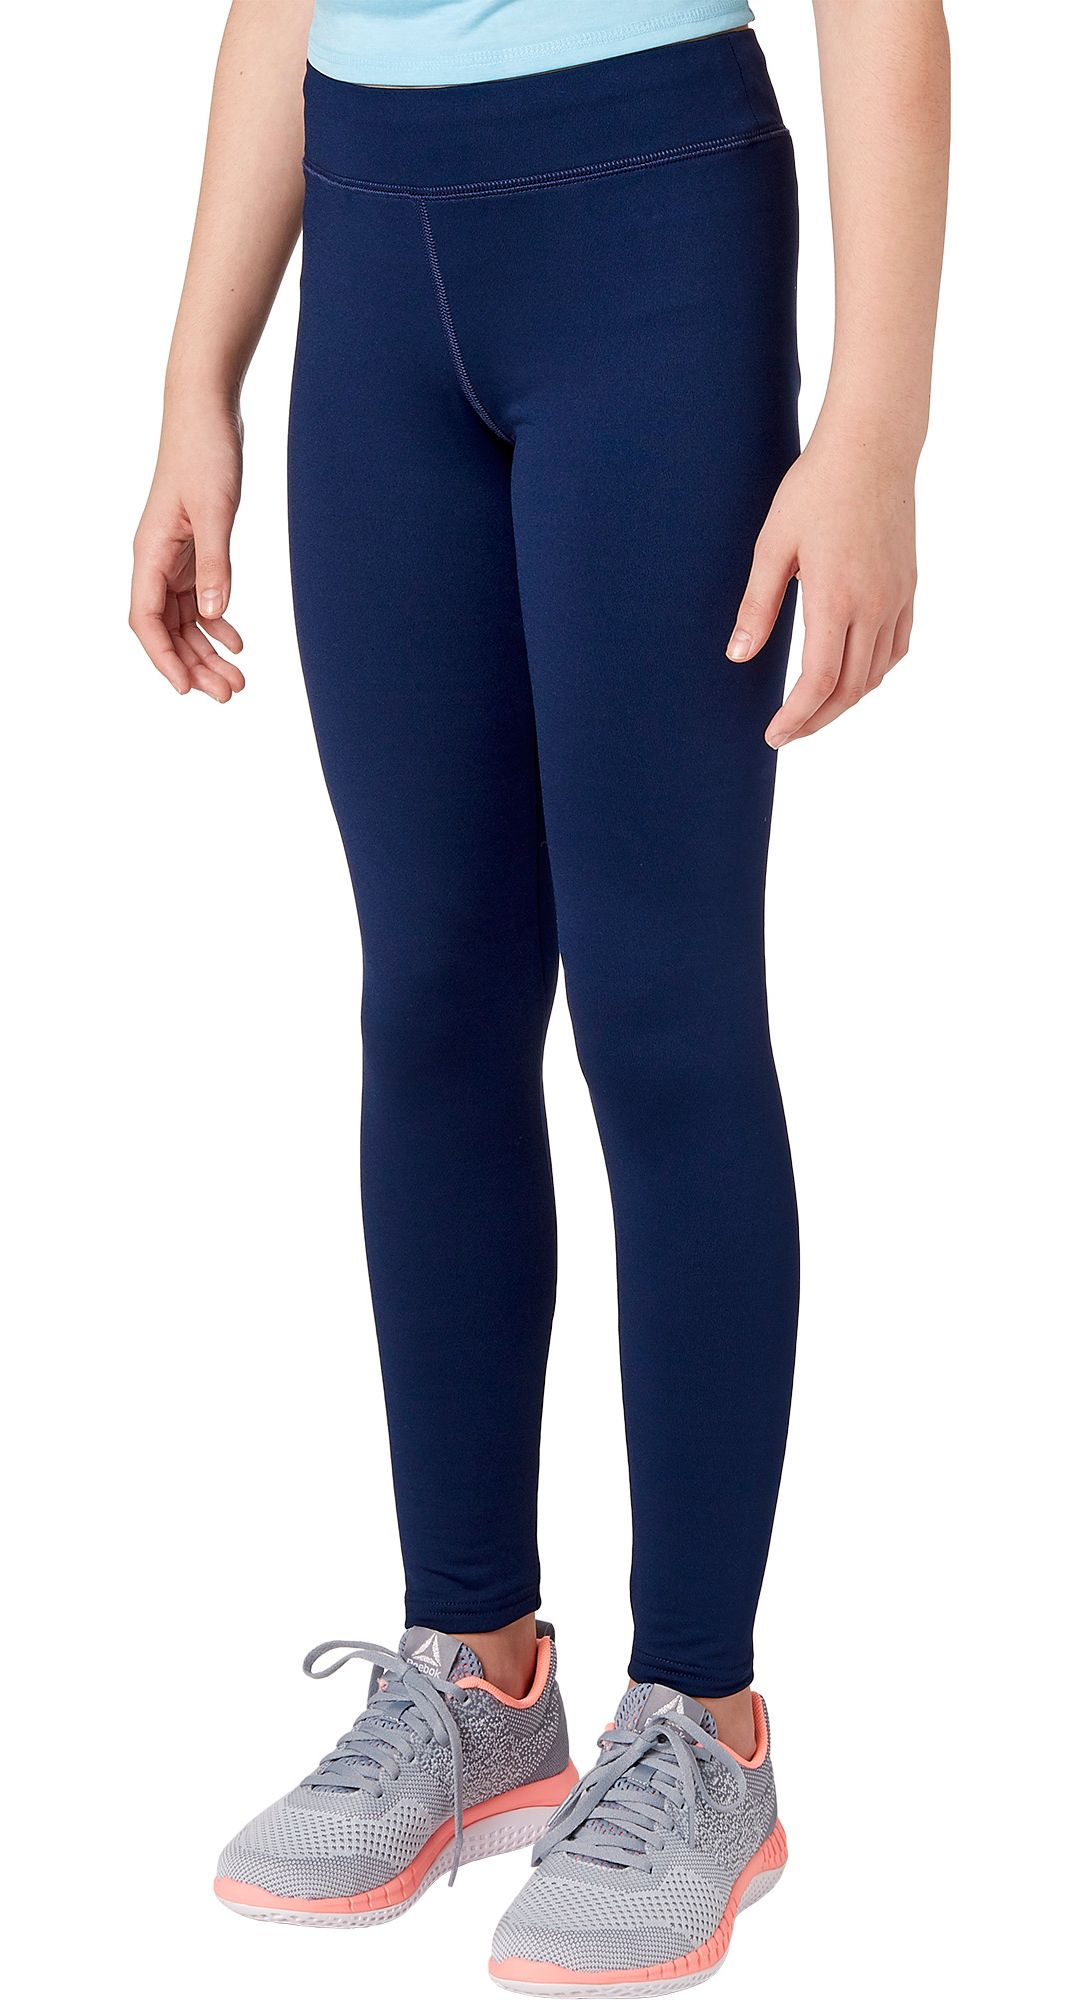 1c5c02ecd5 Reebok Girls' Cold Weather Compression Tights